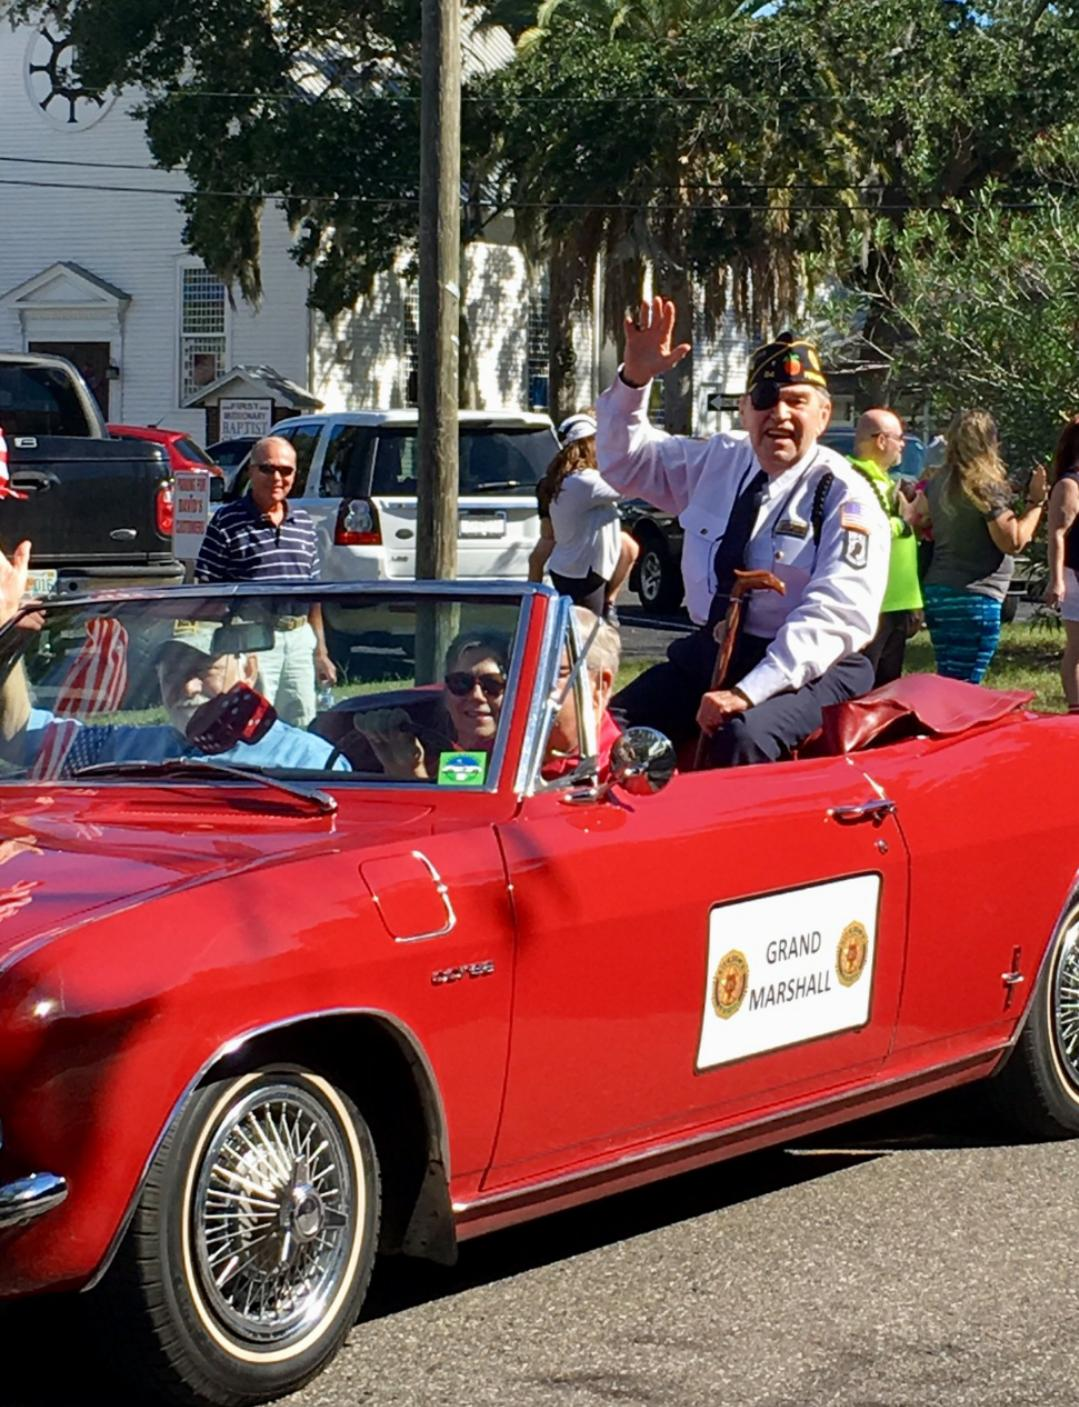 Veterans Day Parade in Fernandina Beach, Florida